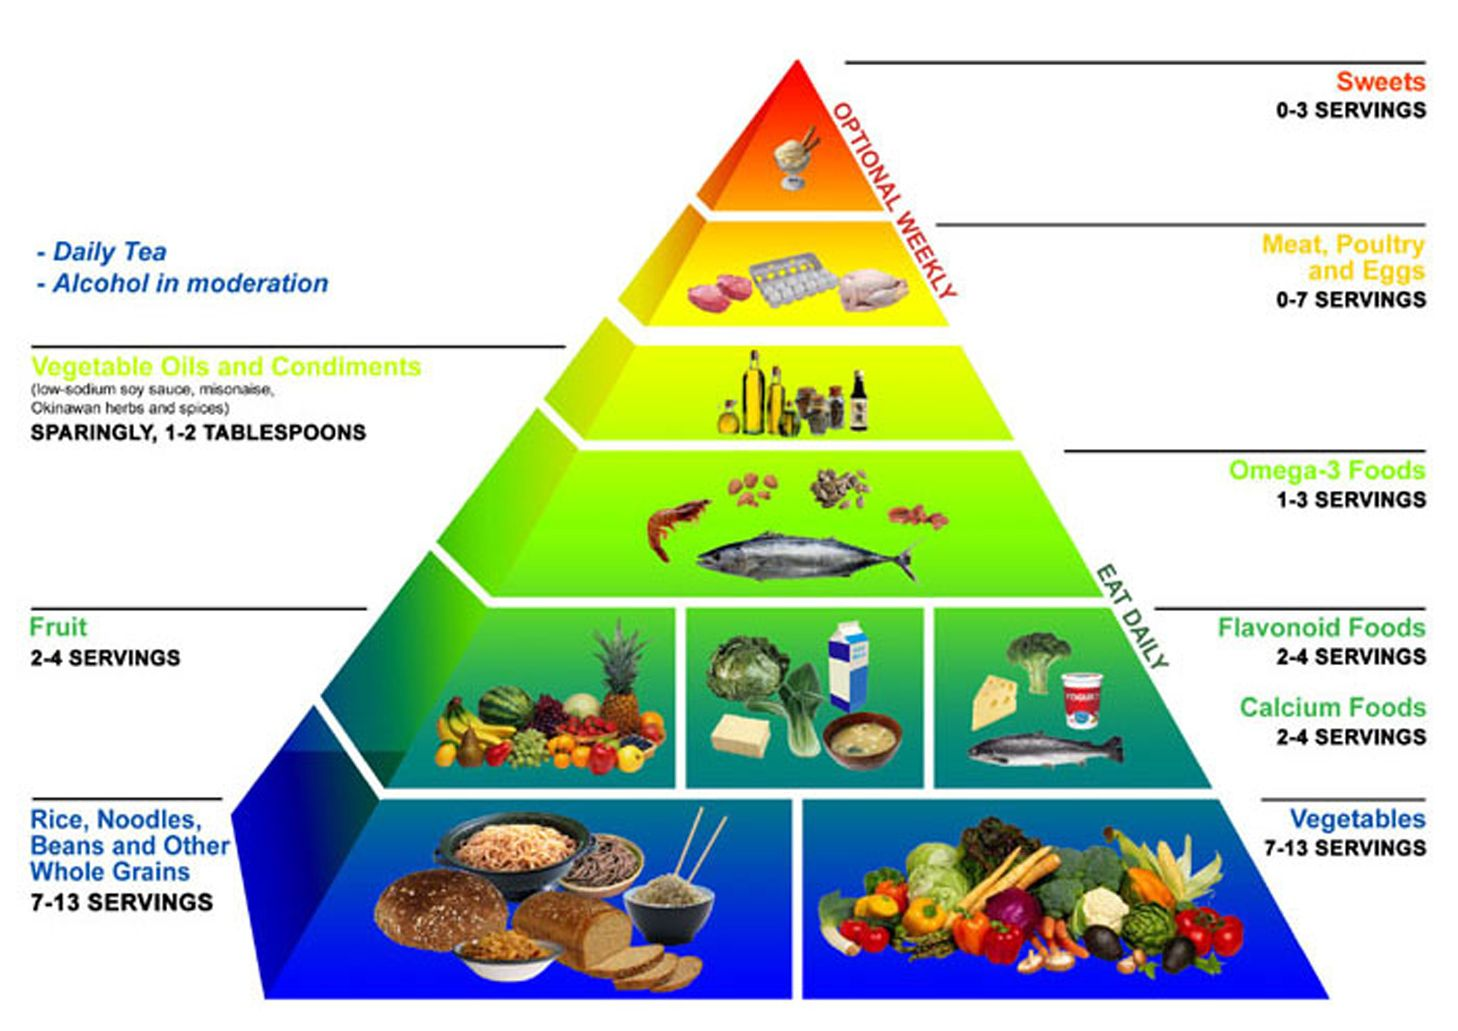 For Many People, Eating Healthy Foods And Meals Is